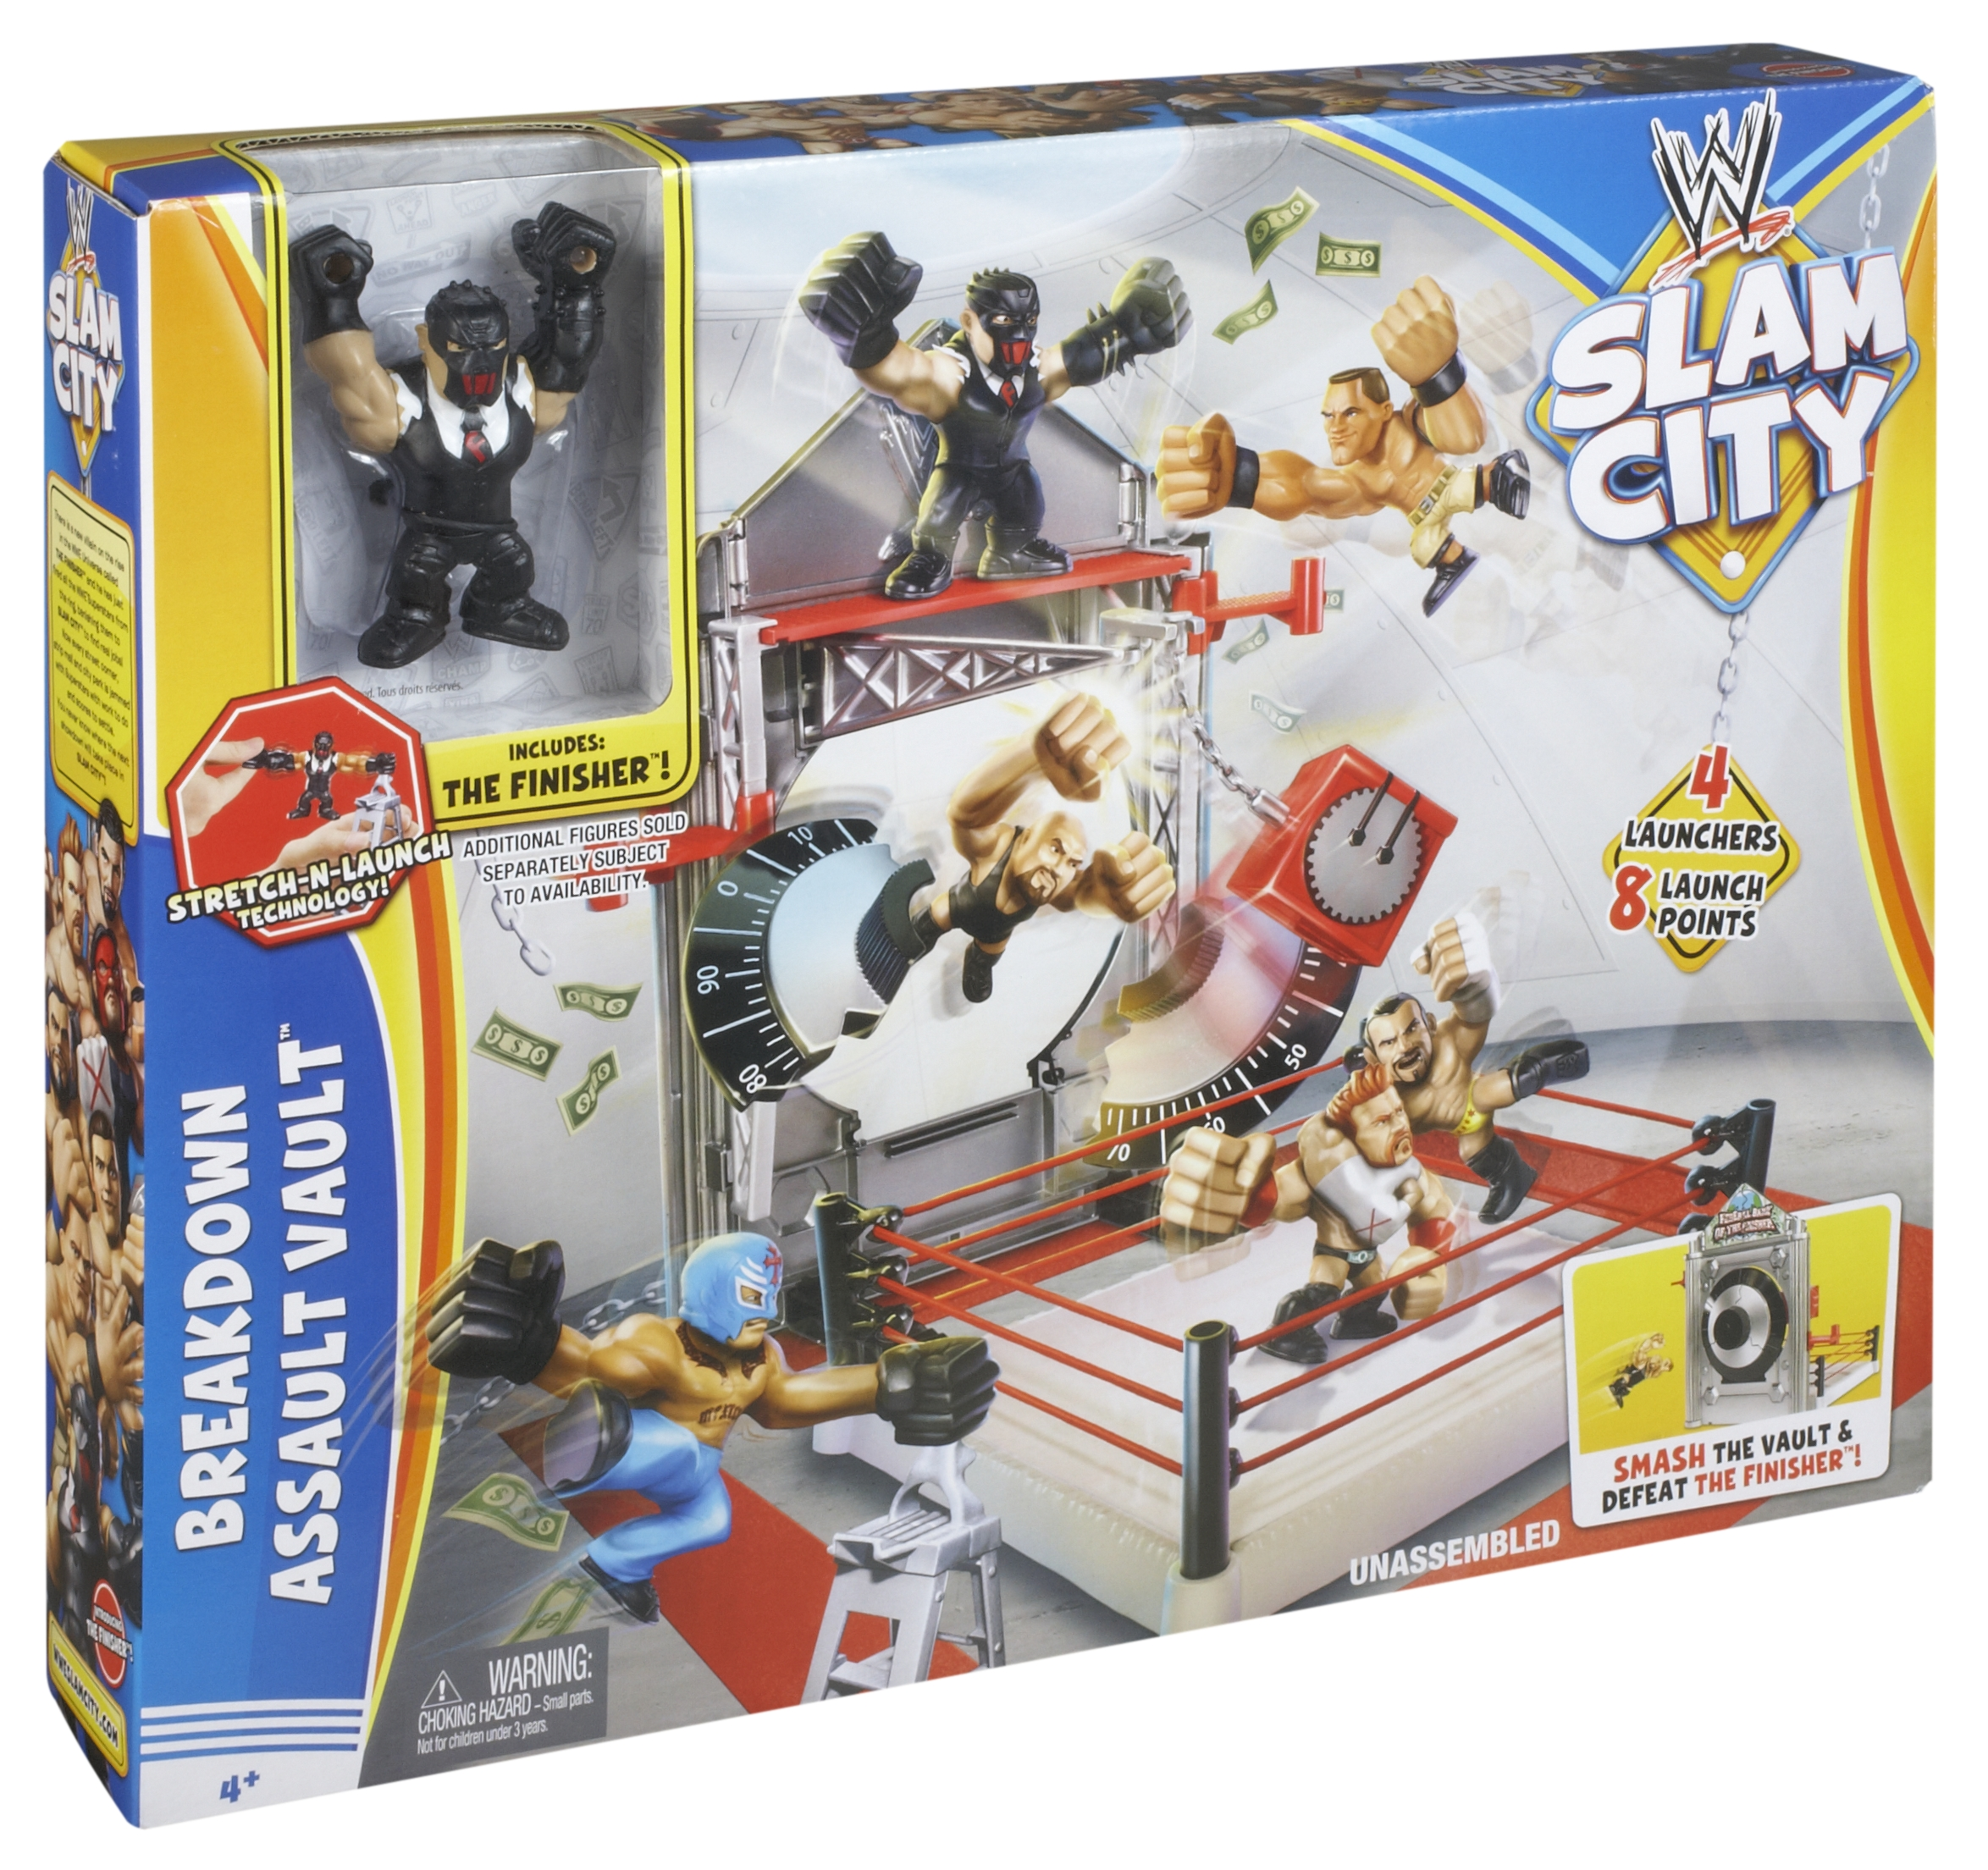 WWE Slam City(TM) merchandise is currently available at major retail stores.